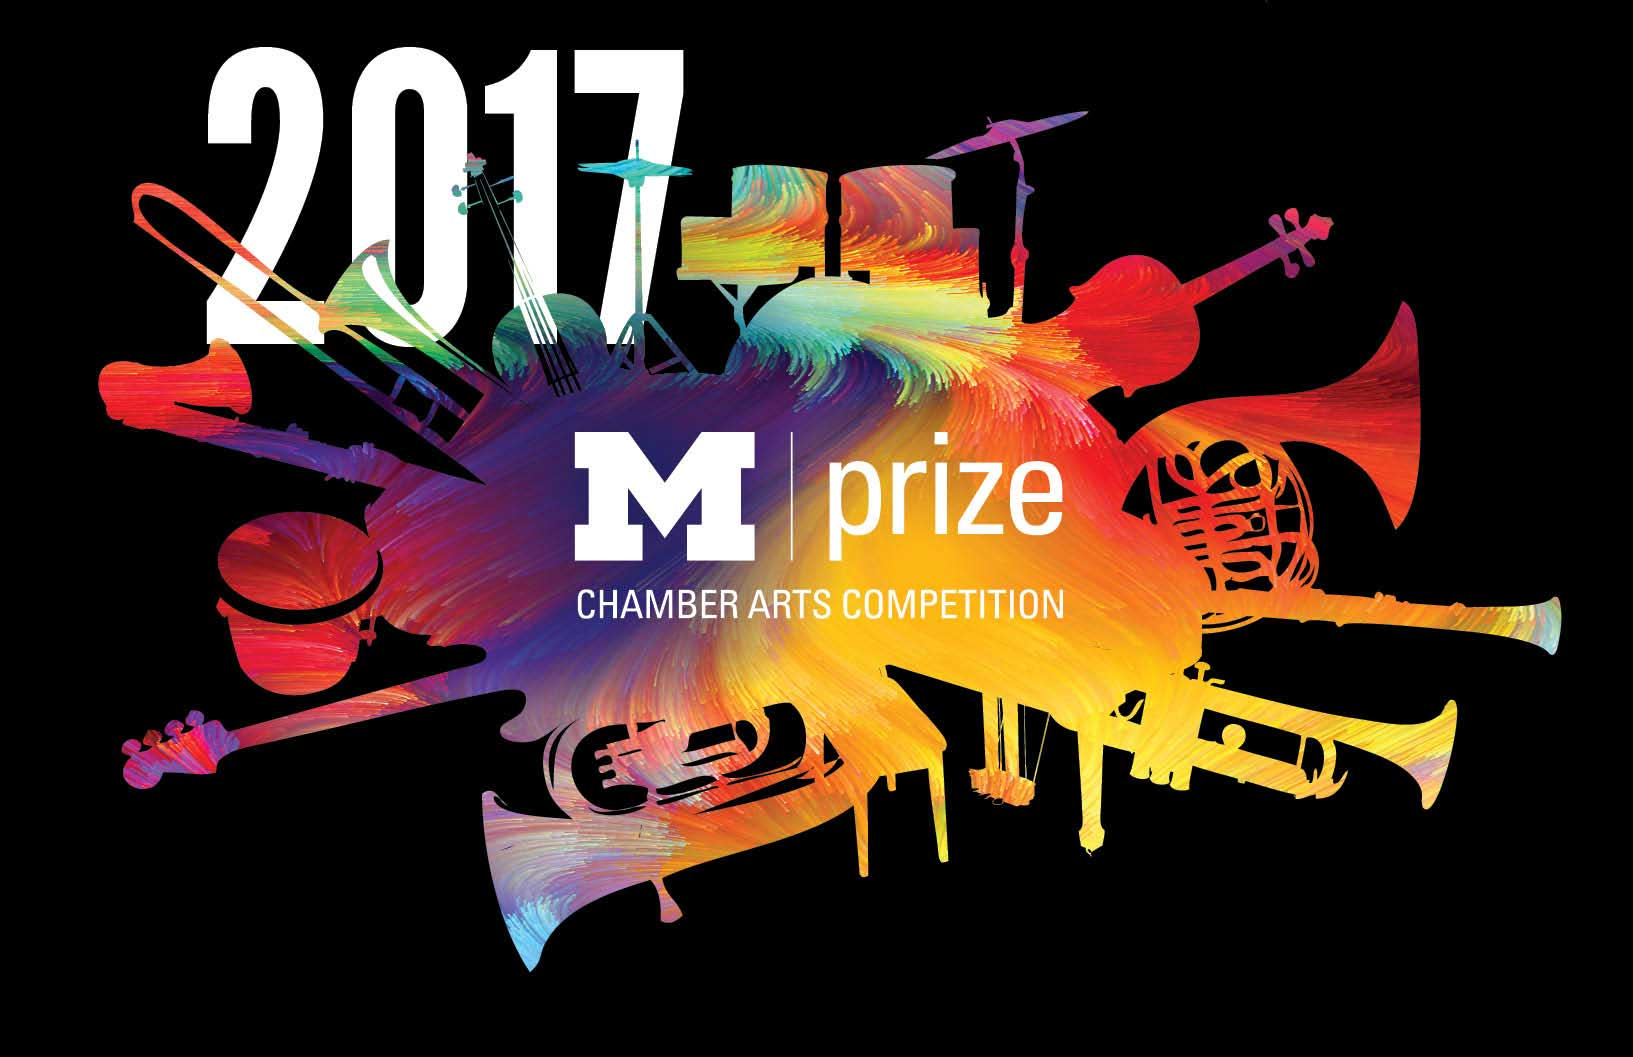 M-Prize promo graphic. Image courtesy: School of Music, Theatre & Dance